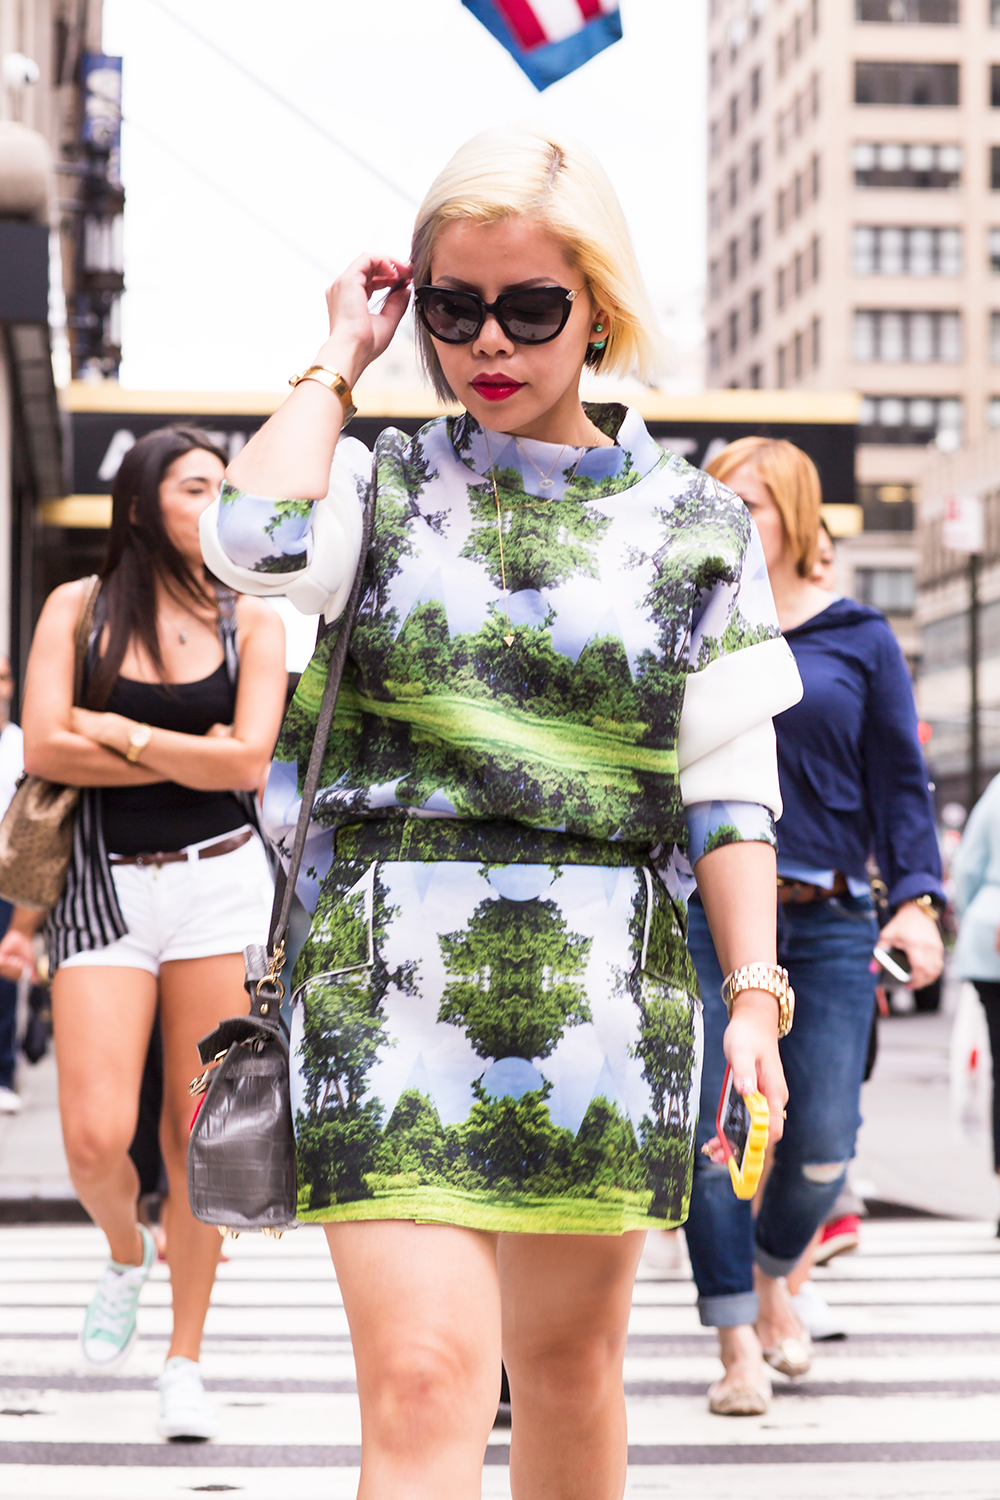 Crystal Phuong- New York Fashion Week 2015- Streetstyle on day 3